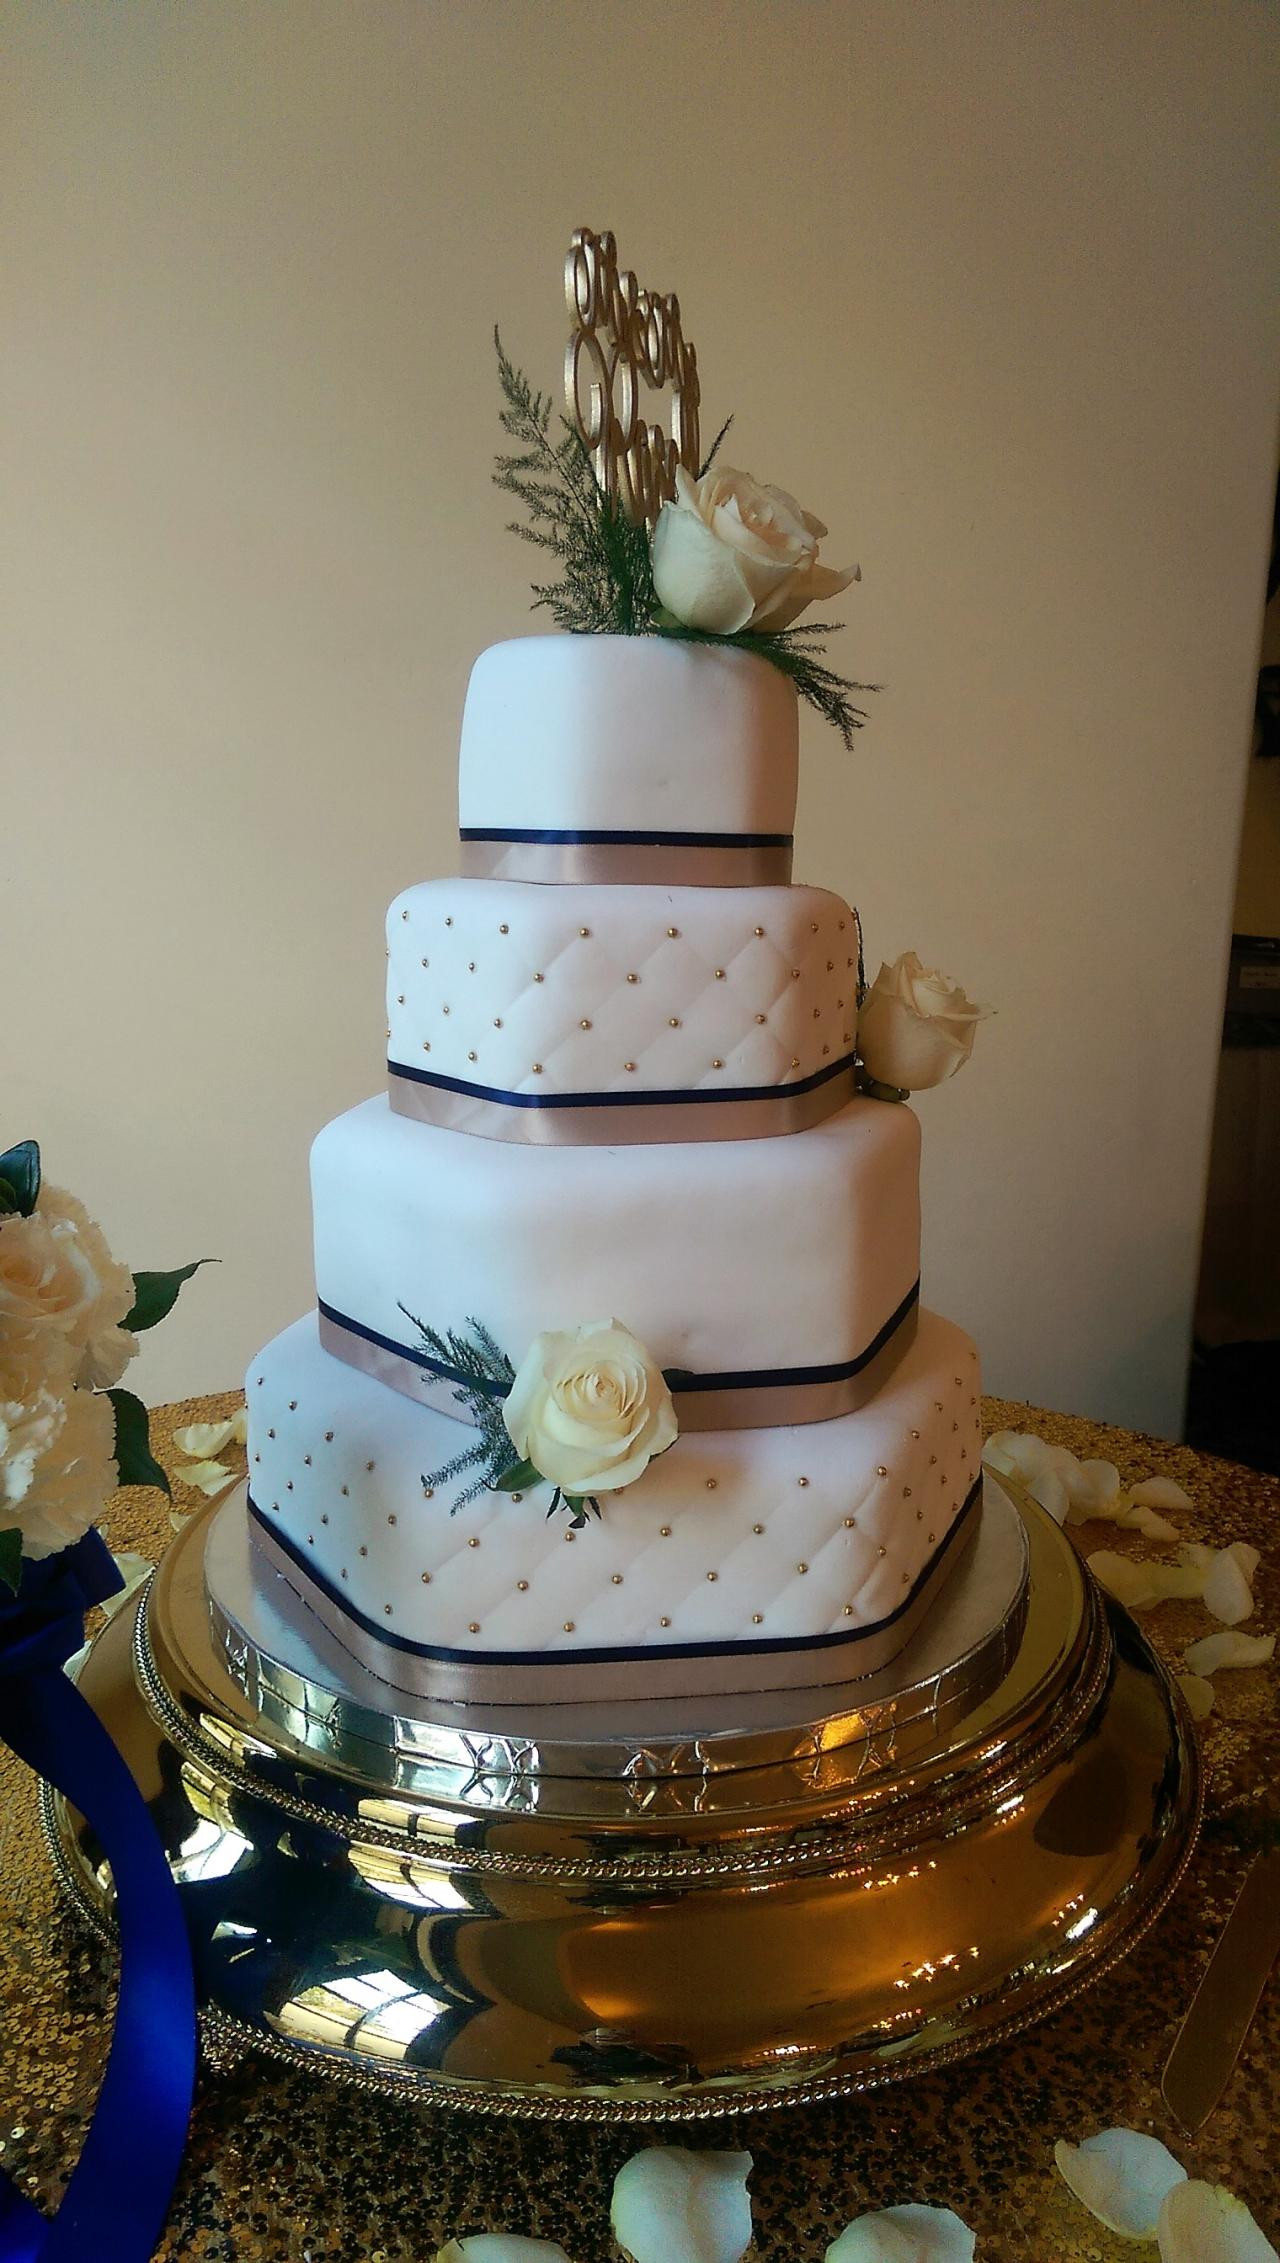 Wedding Cakes Picture Gallery  My Goodness Cakes Wedding Cake Gallery 2